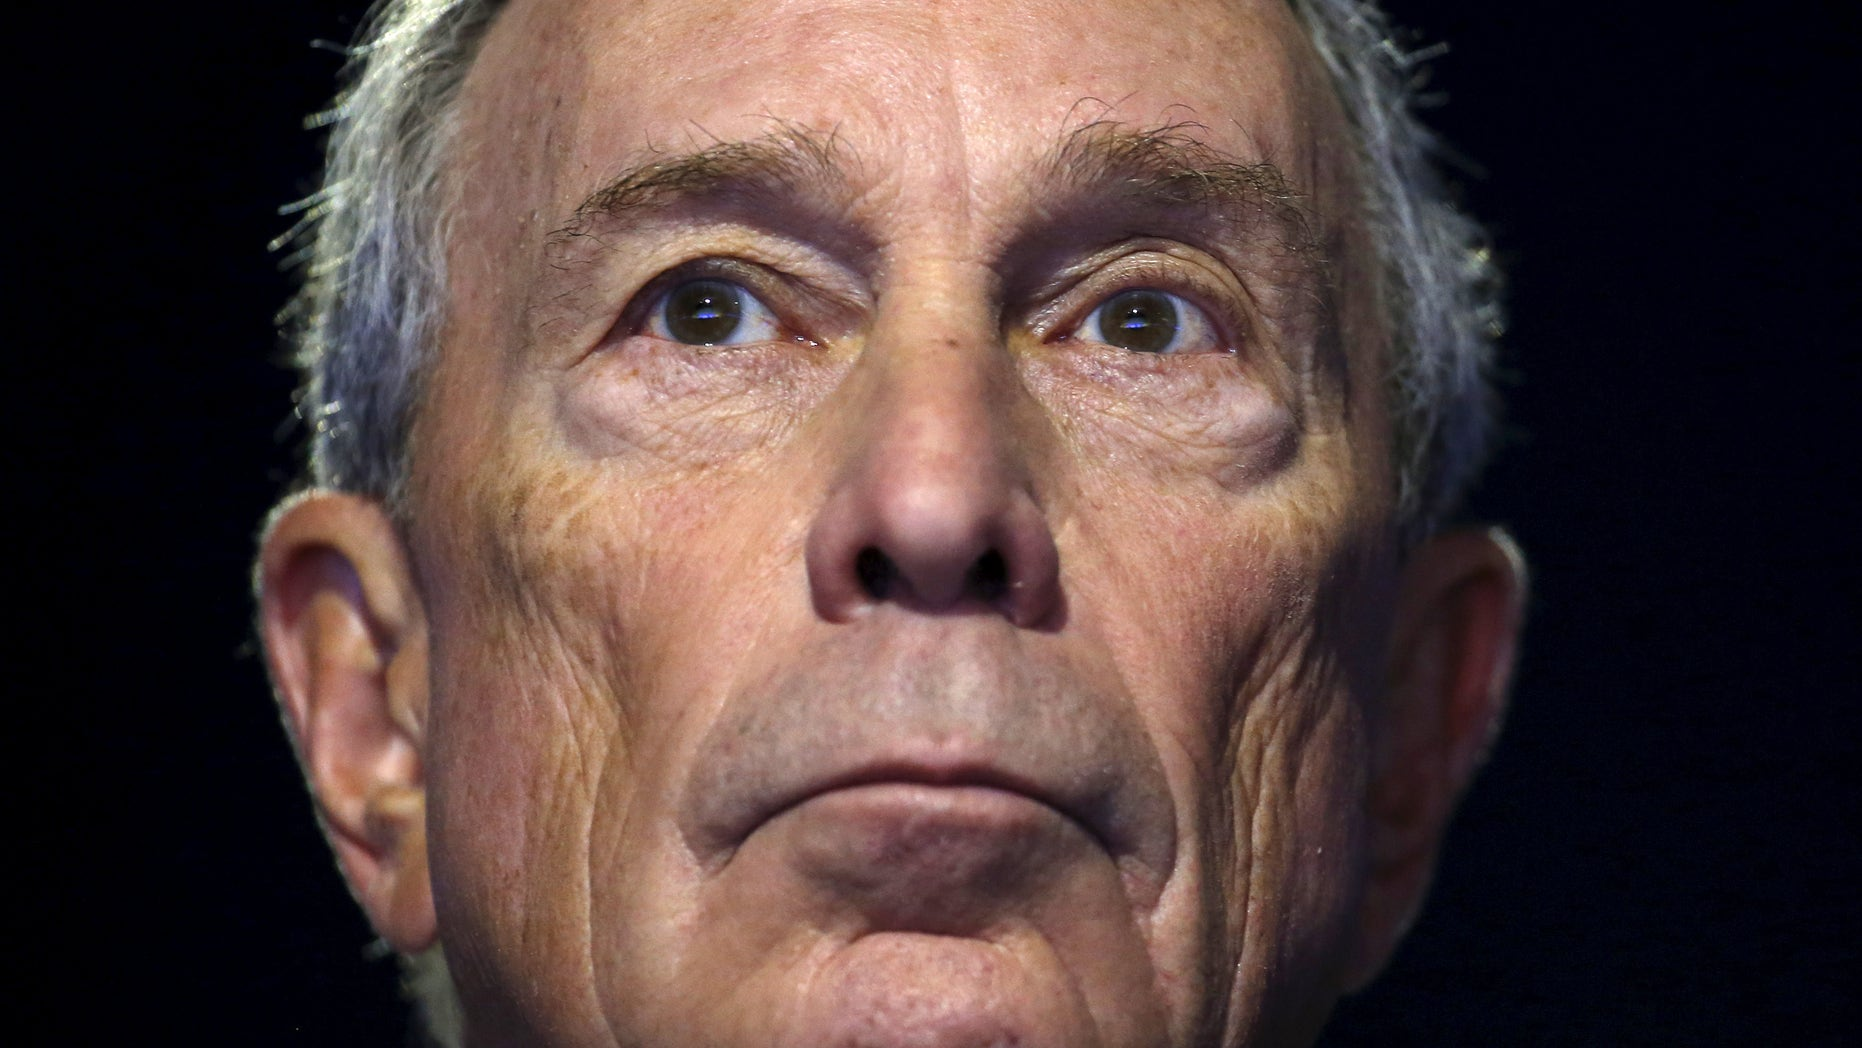 Former New York City Mayor Michael Bloomberg attends a meeting during the World Climate Change Conference 2015 (COP21) at Le Bourget, near Paris, France, December 5, 2015. REUTERS/Stephane Mahe